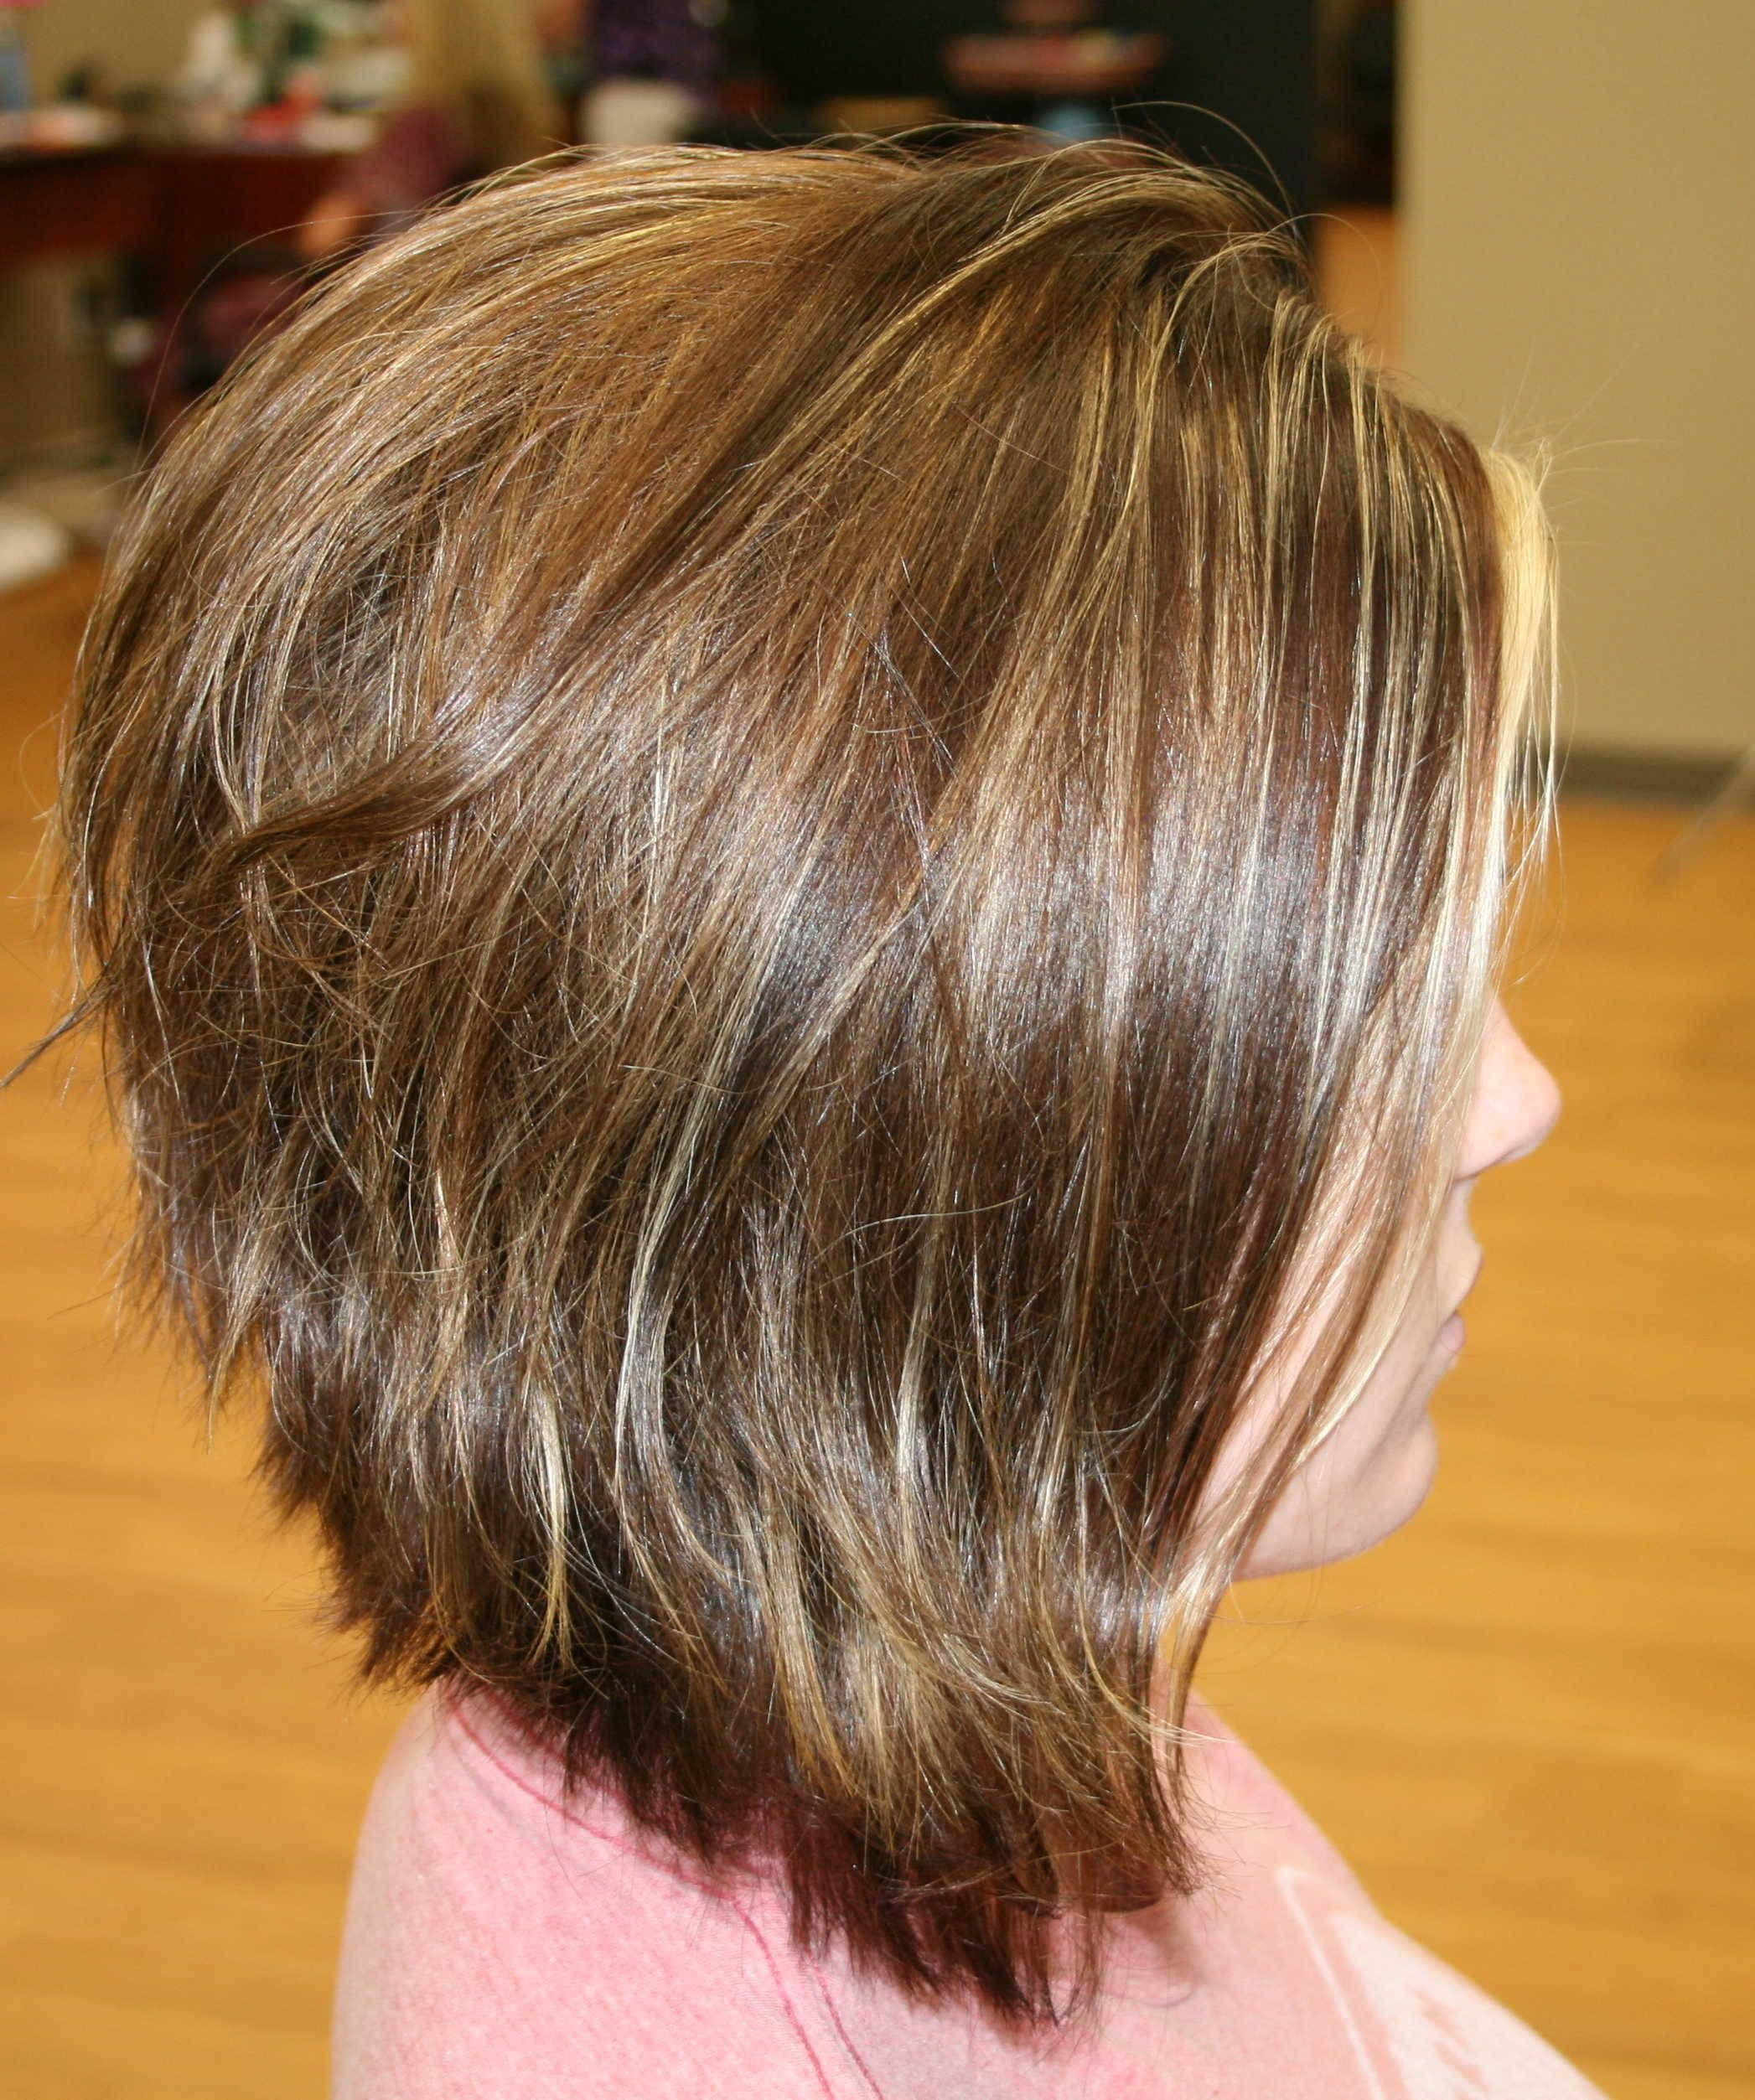 Remarkable 1000 Images About Hair On Pinterest Short Hairstyles Gunalazisus